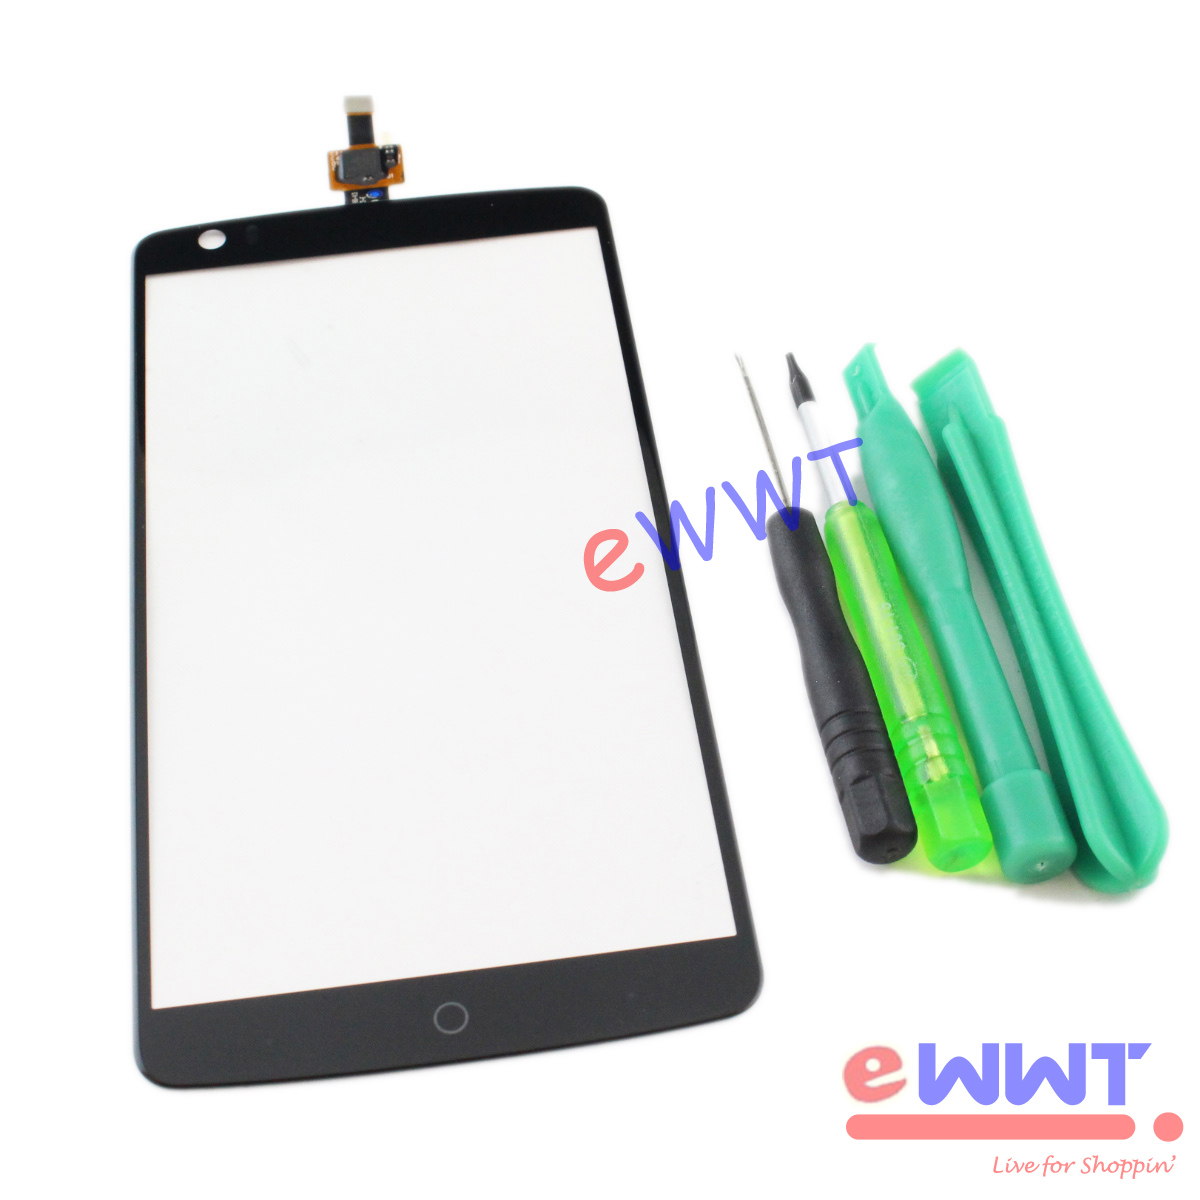 does require zte tablet screen replacement moreand although you